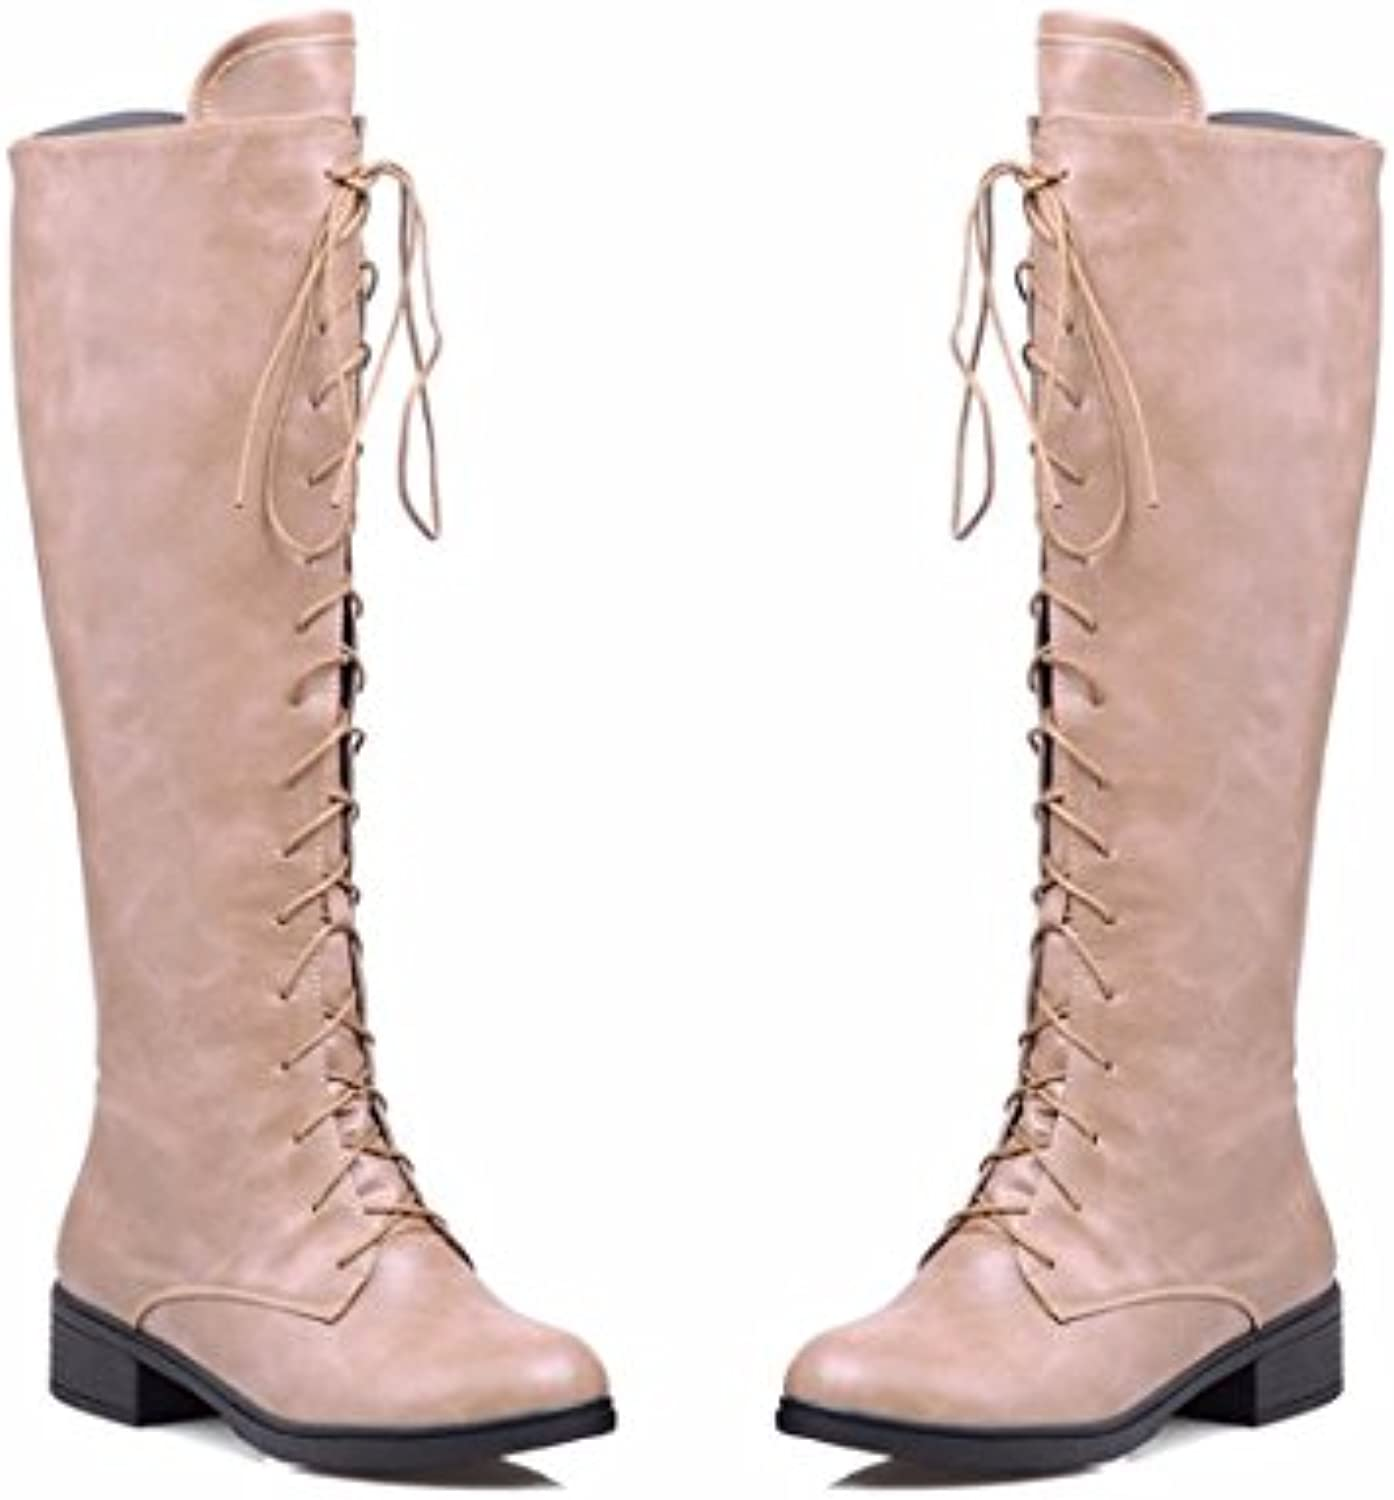 RFF-WoHommes 's Shoes Autumn and and and Winter Low to High Boots High Boots Size Cylinder Cross Straps,Beige,36B075VTH1JSParent   Sale    Une Performance Fiable  c36480